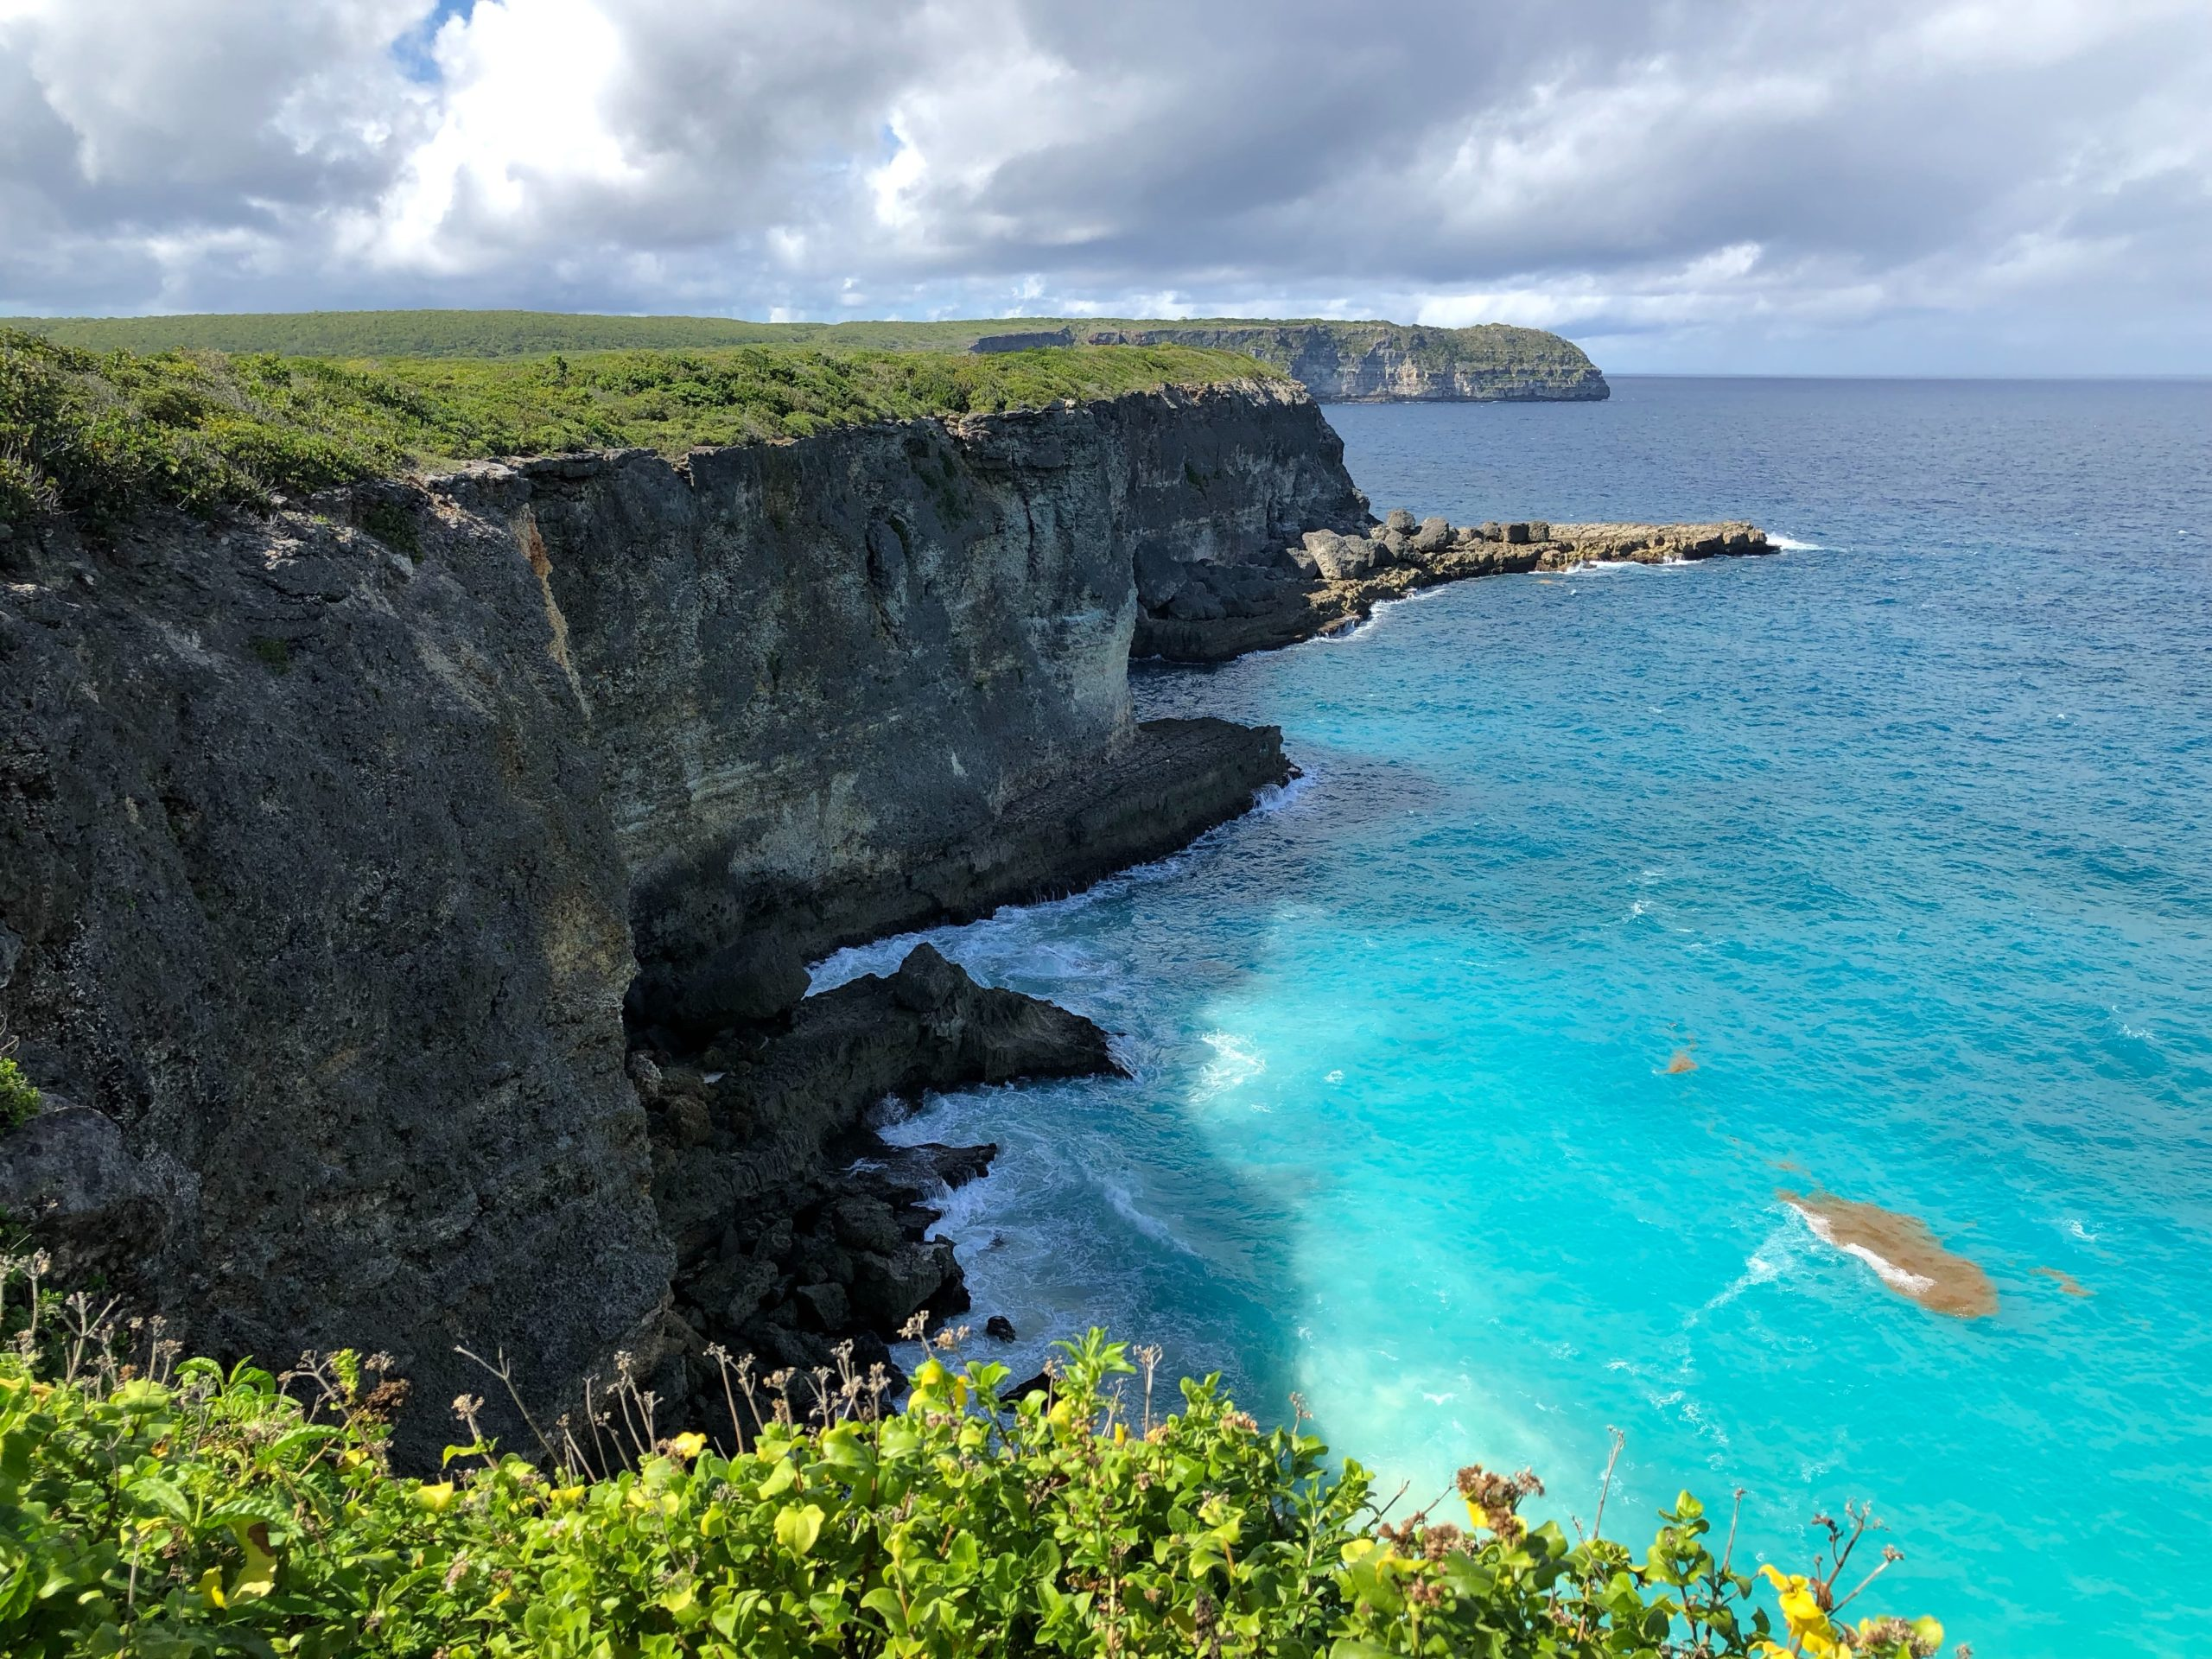 25 Best Islands To Visit in the Caribbean